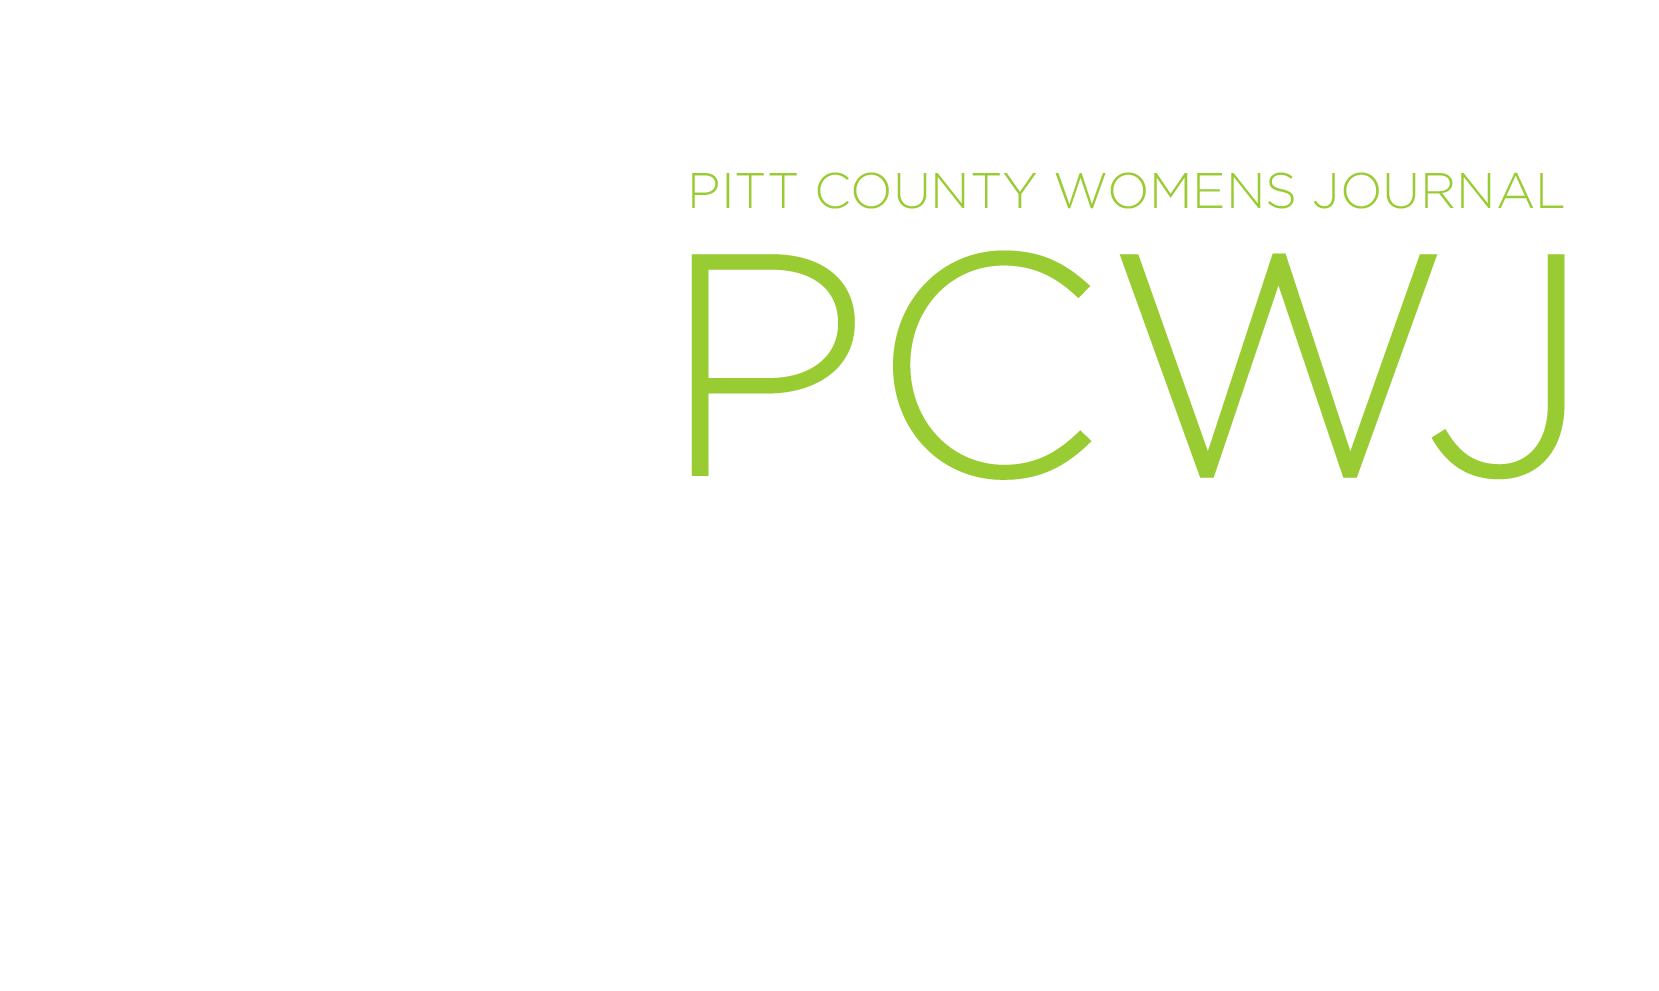 Pitt County Women's Journal